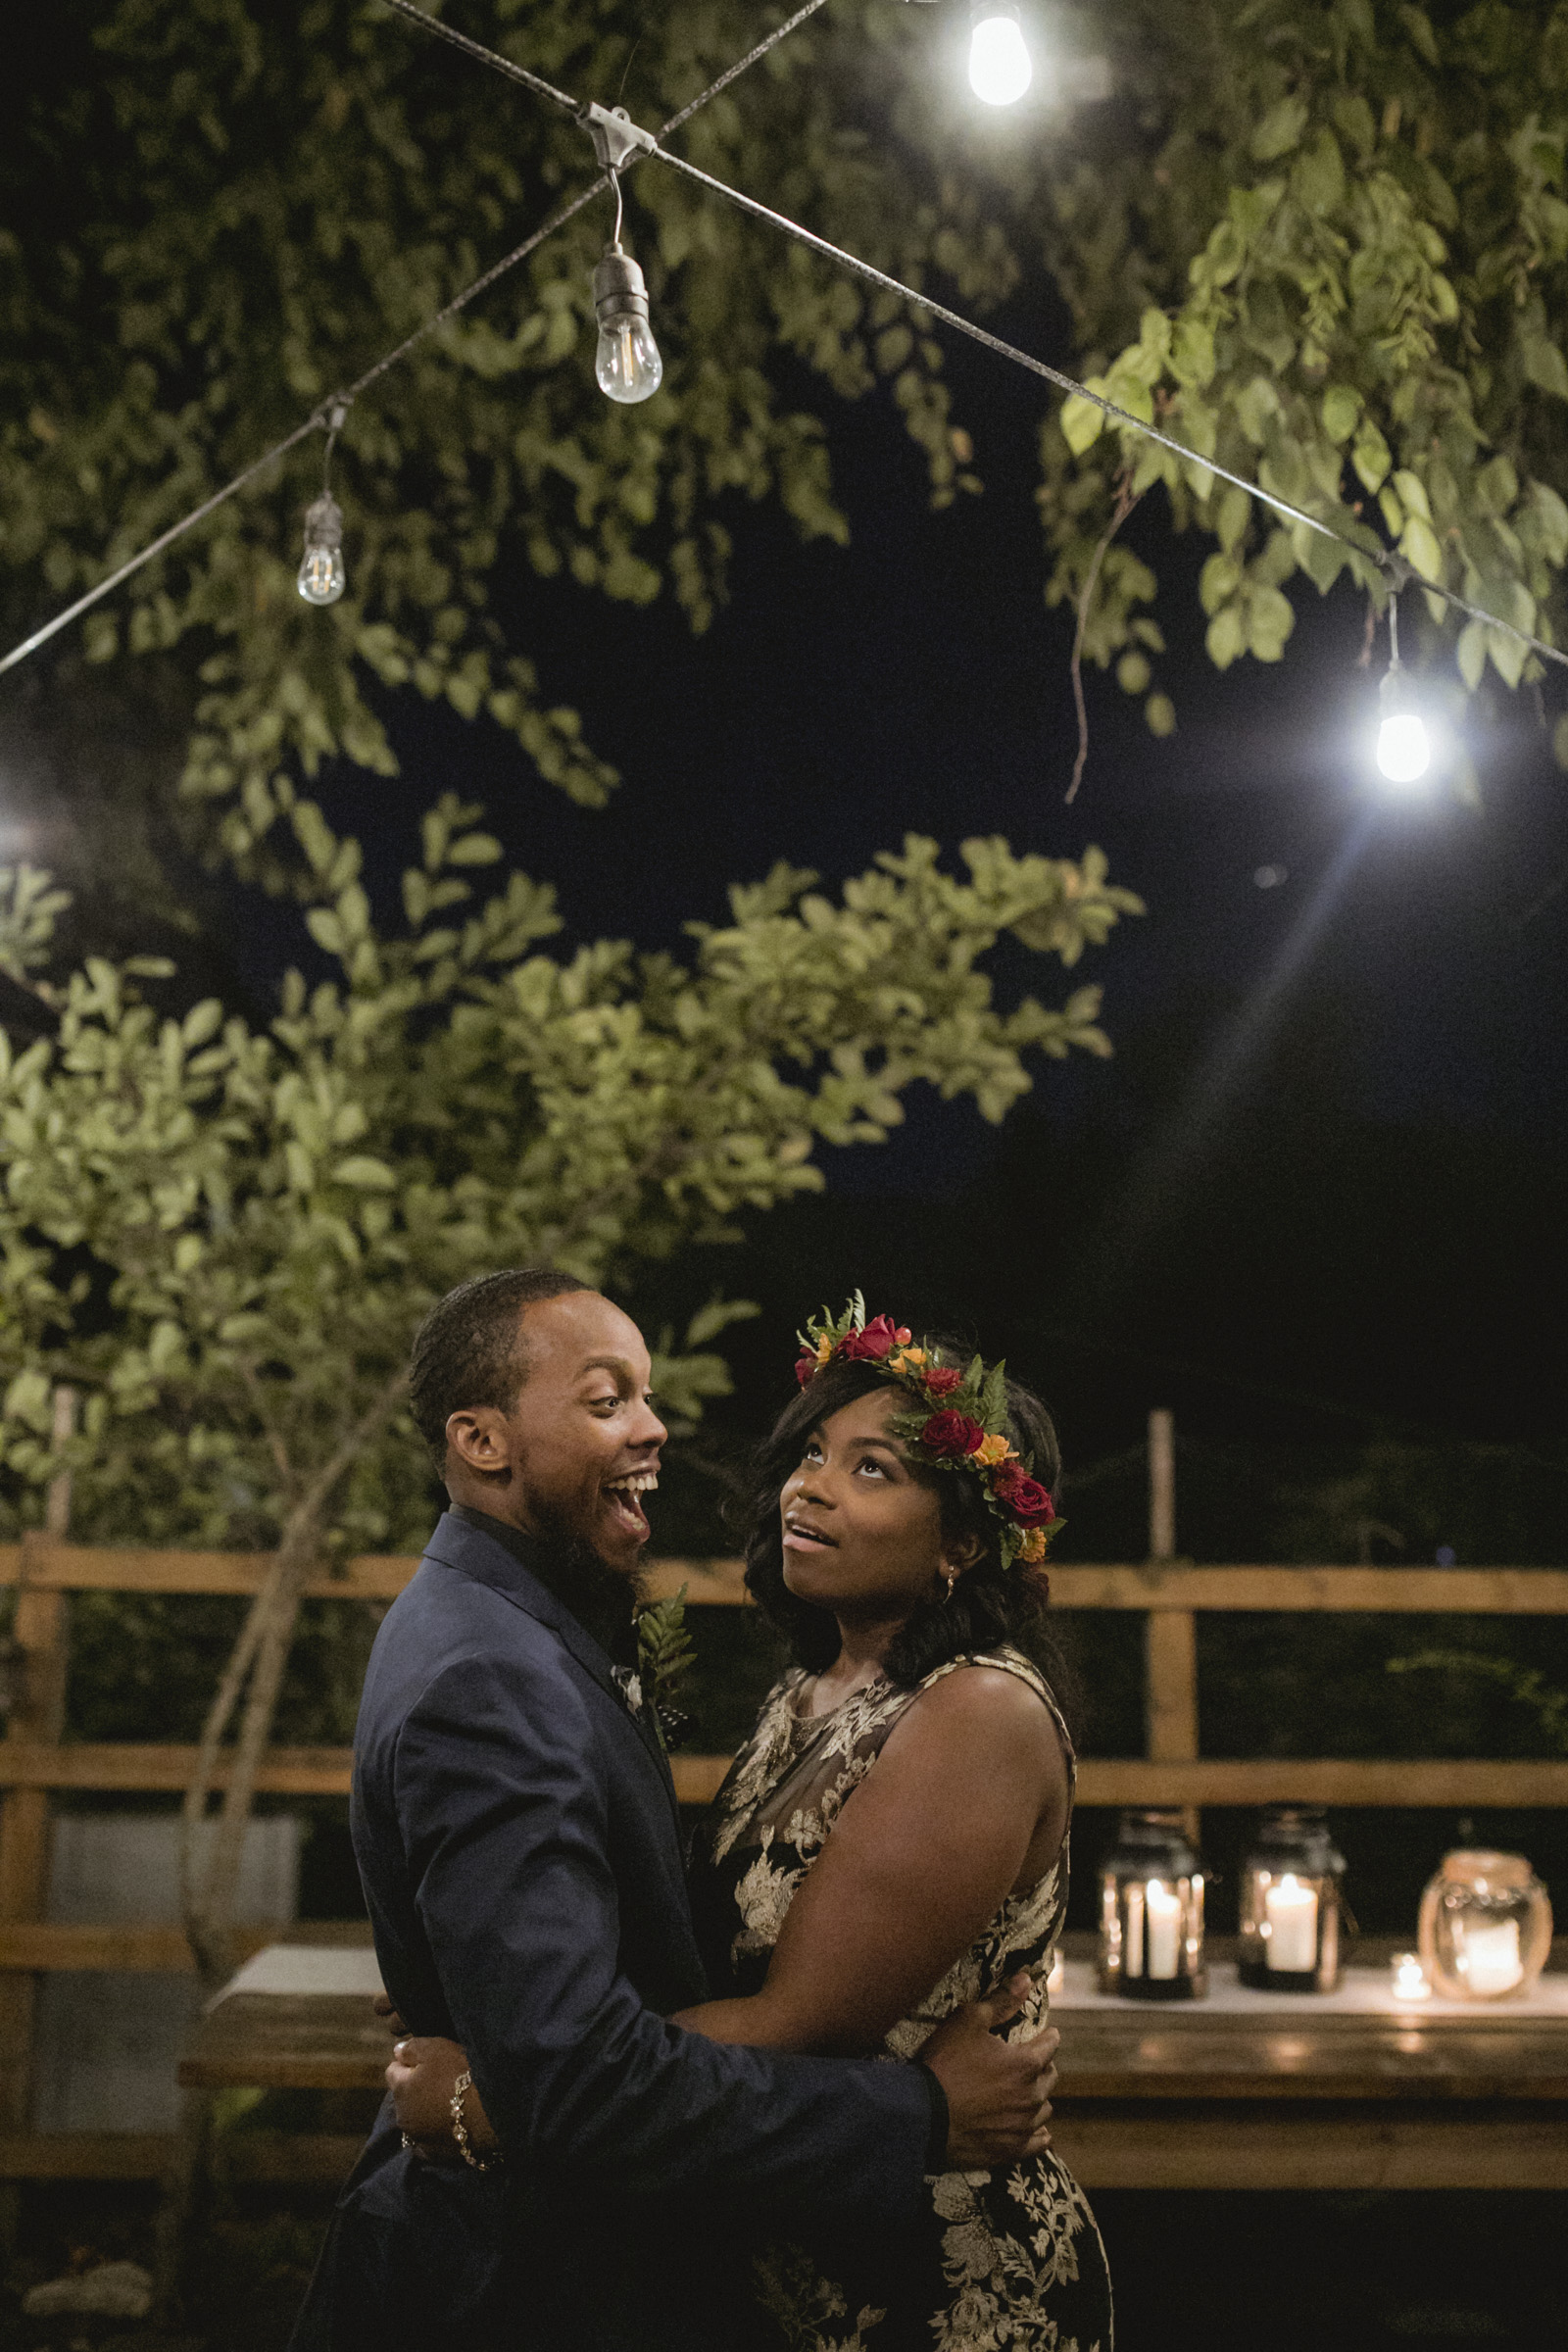 Amy Sims Photography | Groom laughs while bride rolls her eyes at his pun | Brooklyn Wedding Photographer | Naturally Delicious Private Dinning Room Wedding